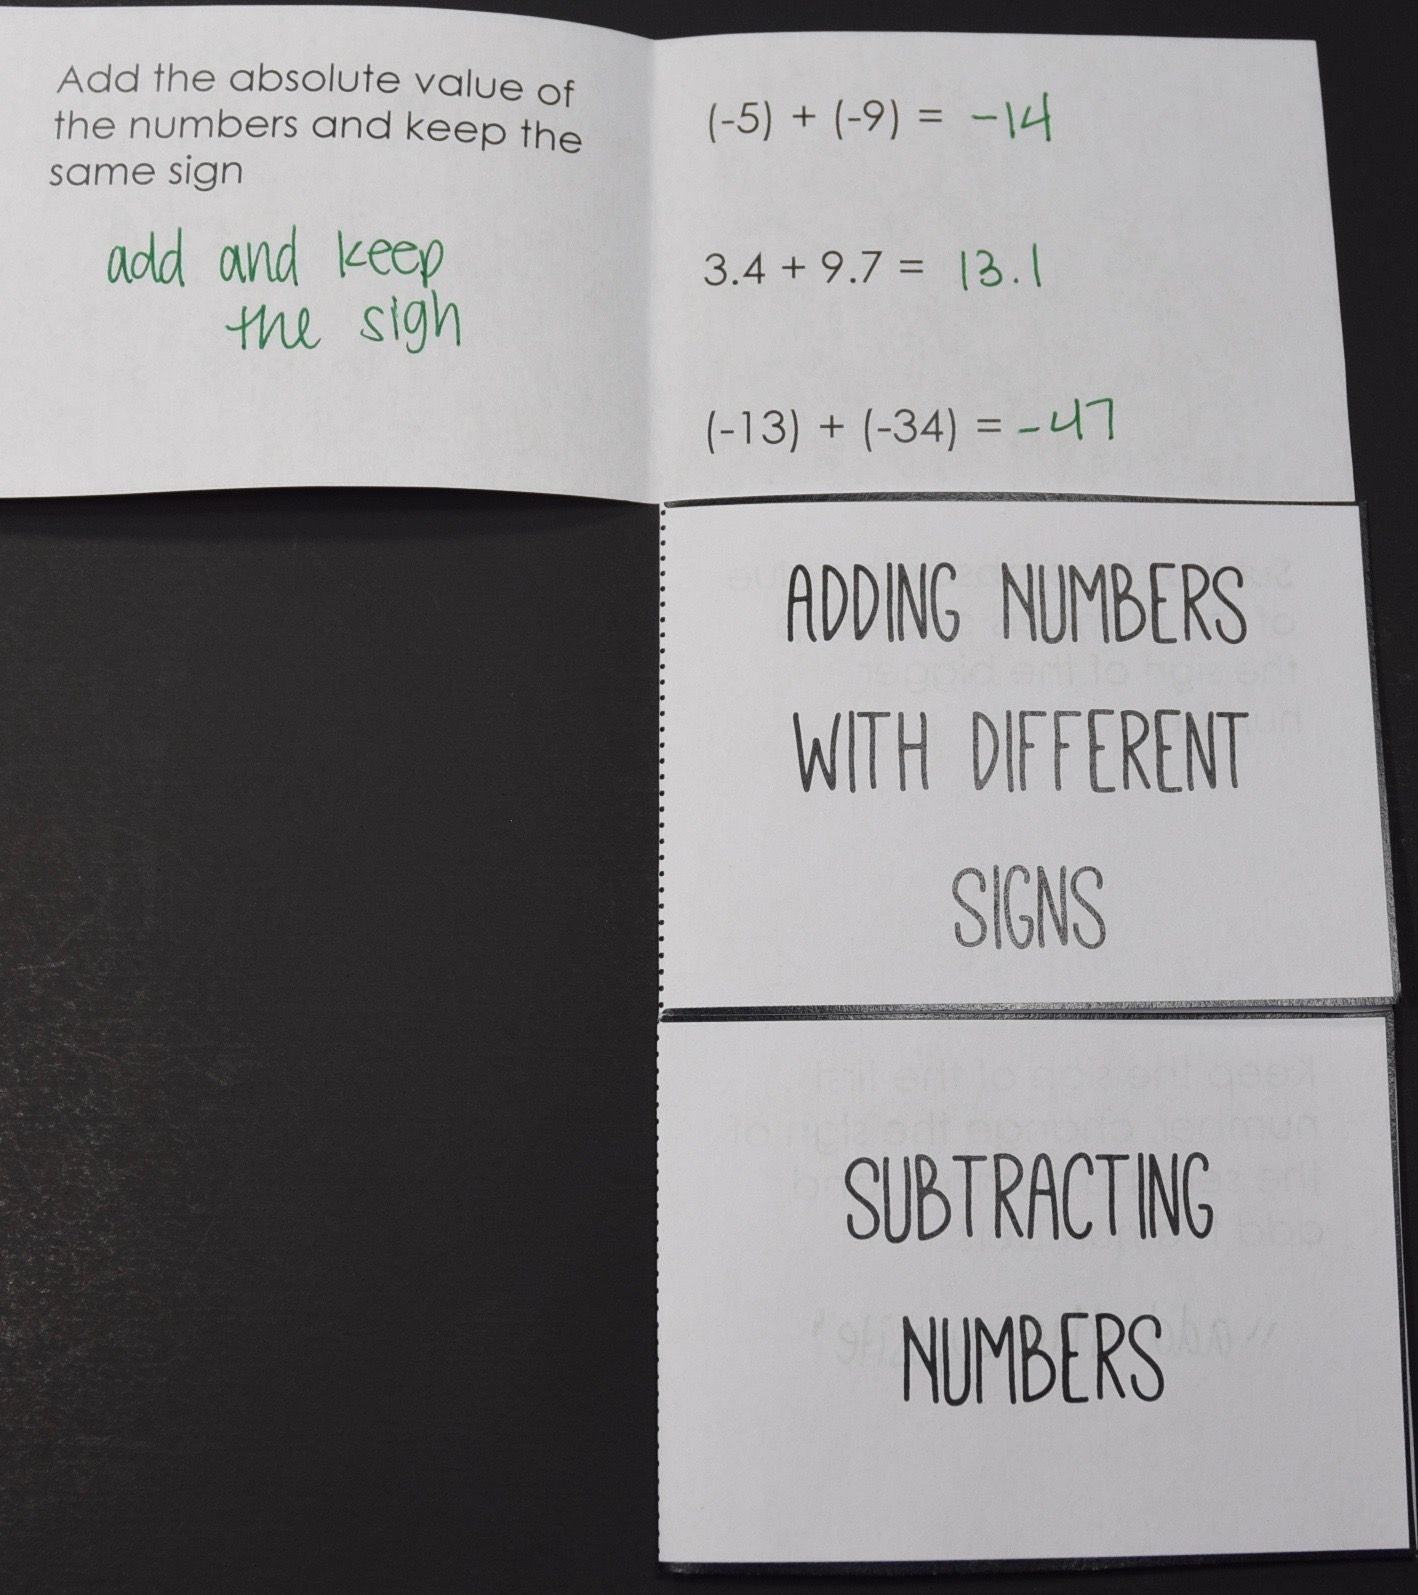 Adding And Subtracting Rational Numbers Foldable Subtracting Rational Numbers Adding And Subtracting Rational Numbers [ 1595 x 1418 Pixel ]